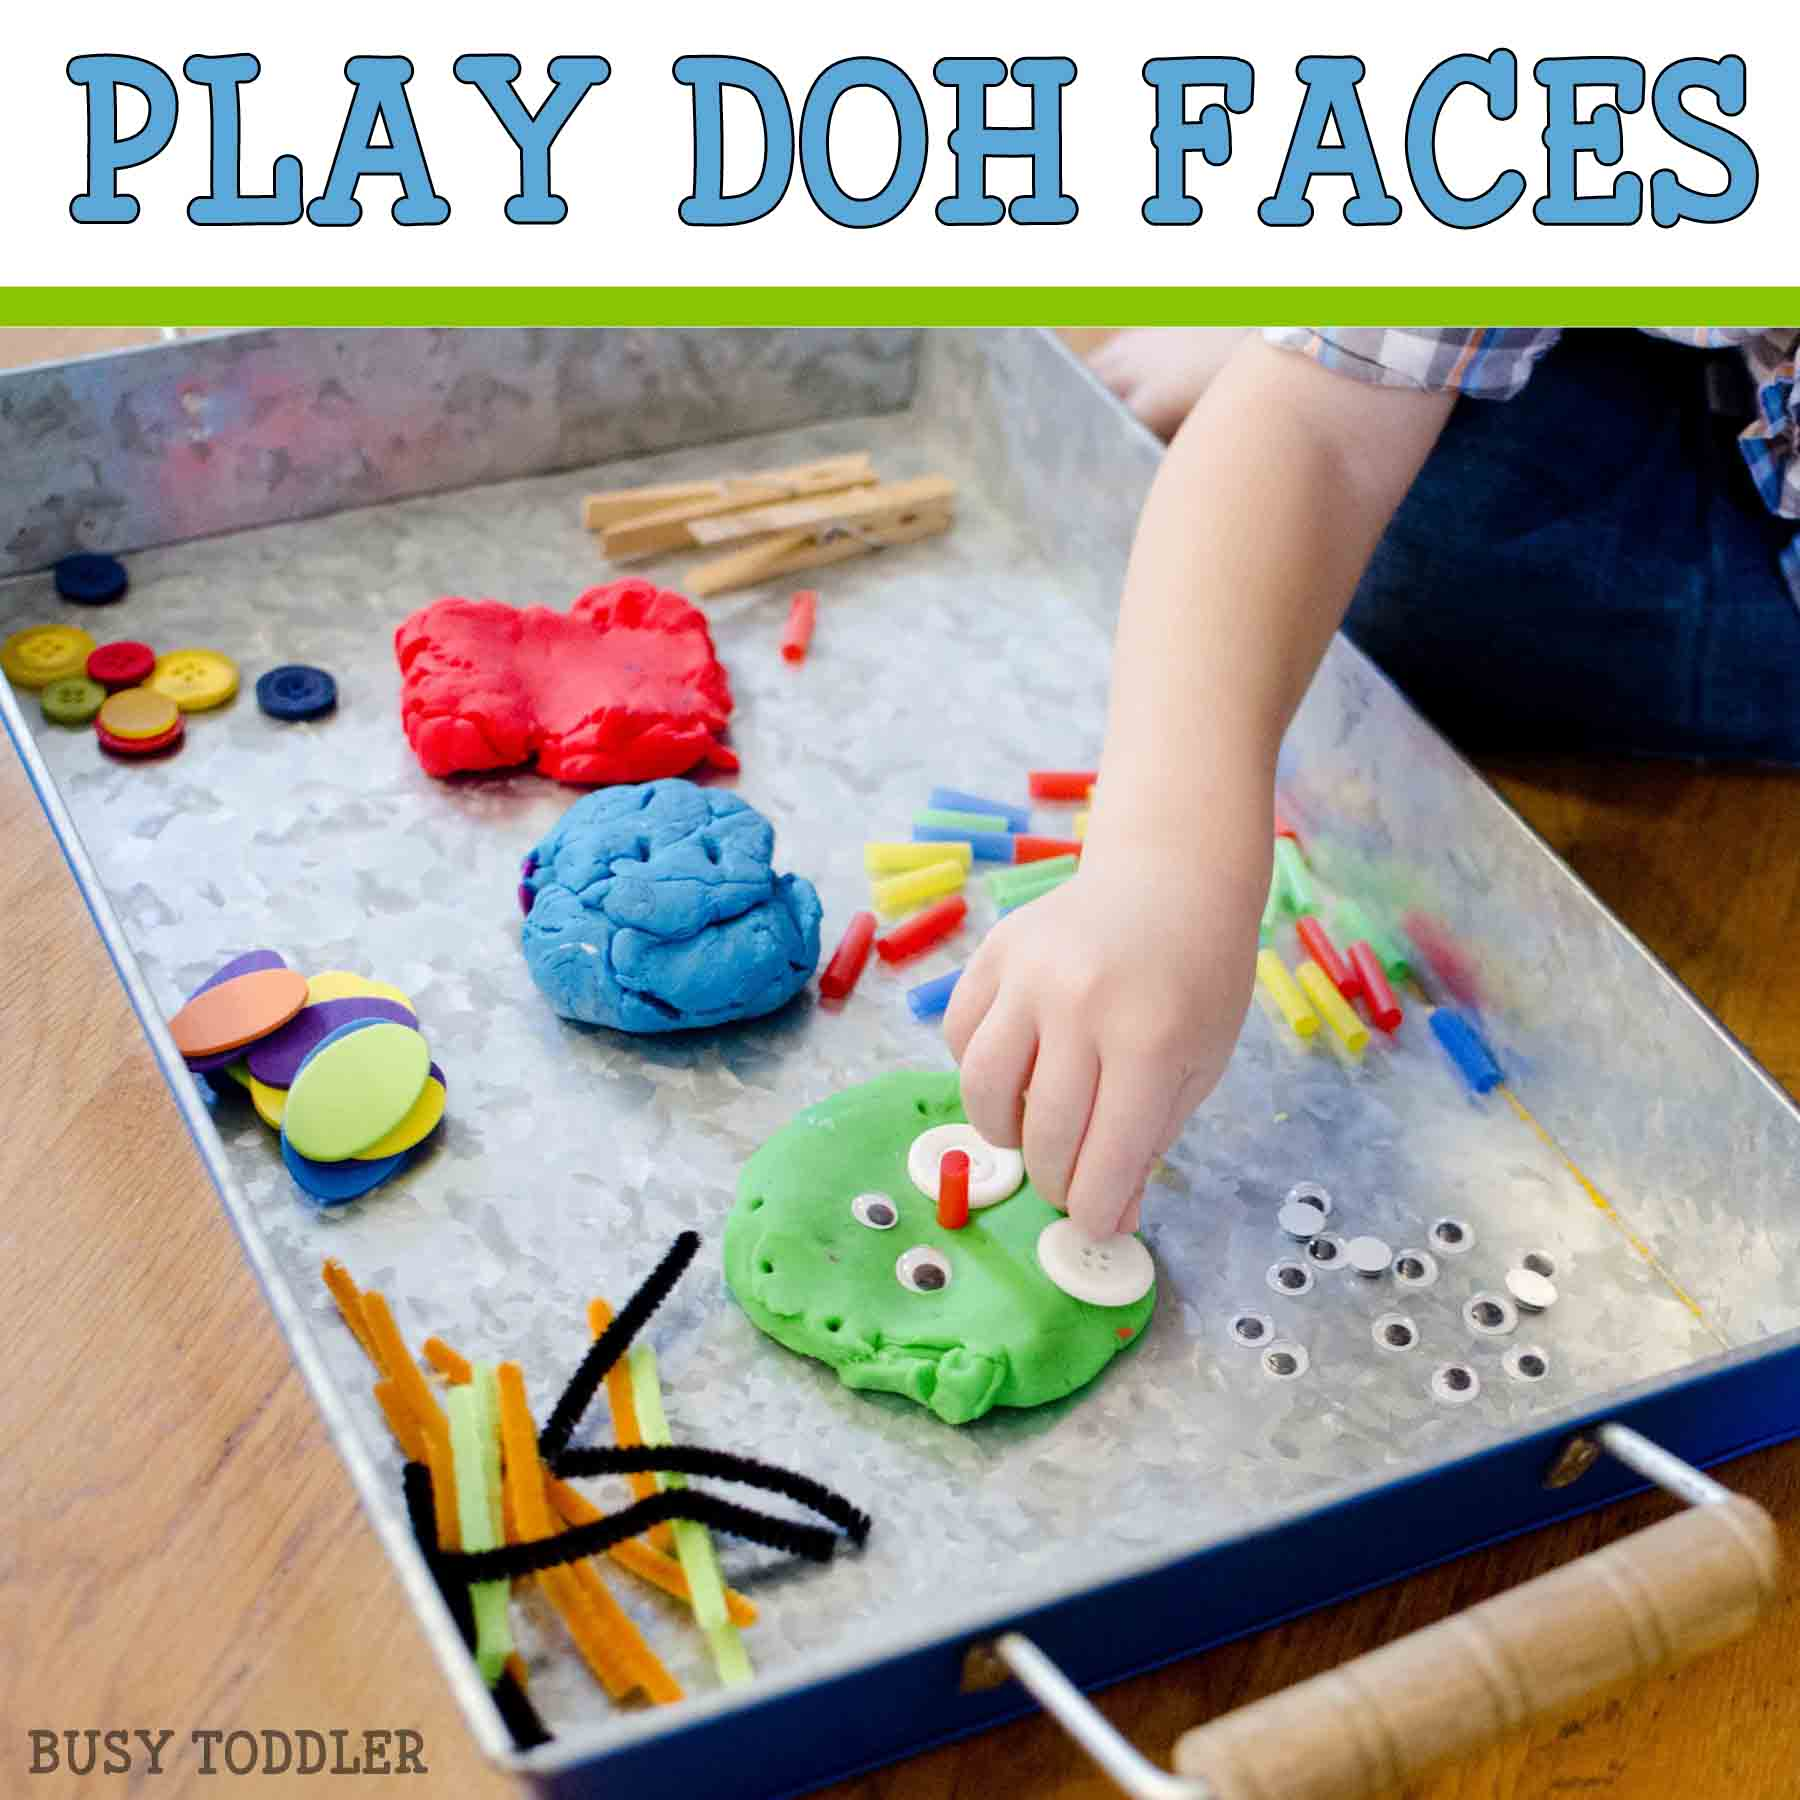 PLAY DOH FACES